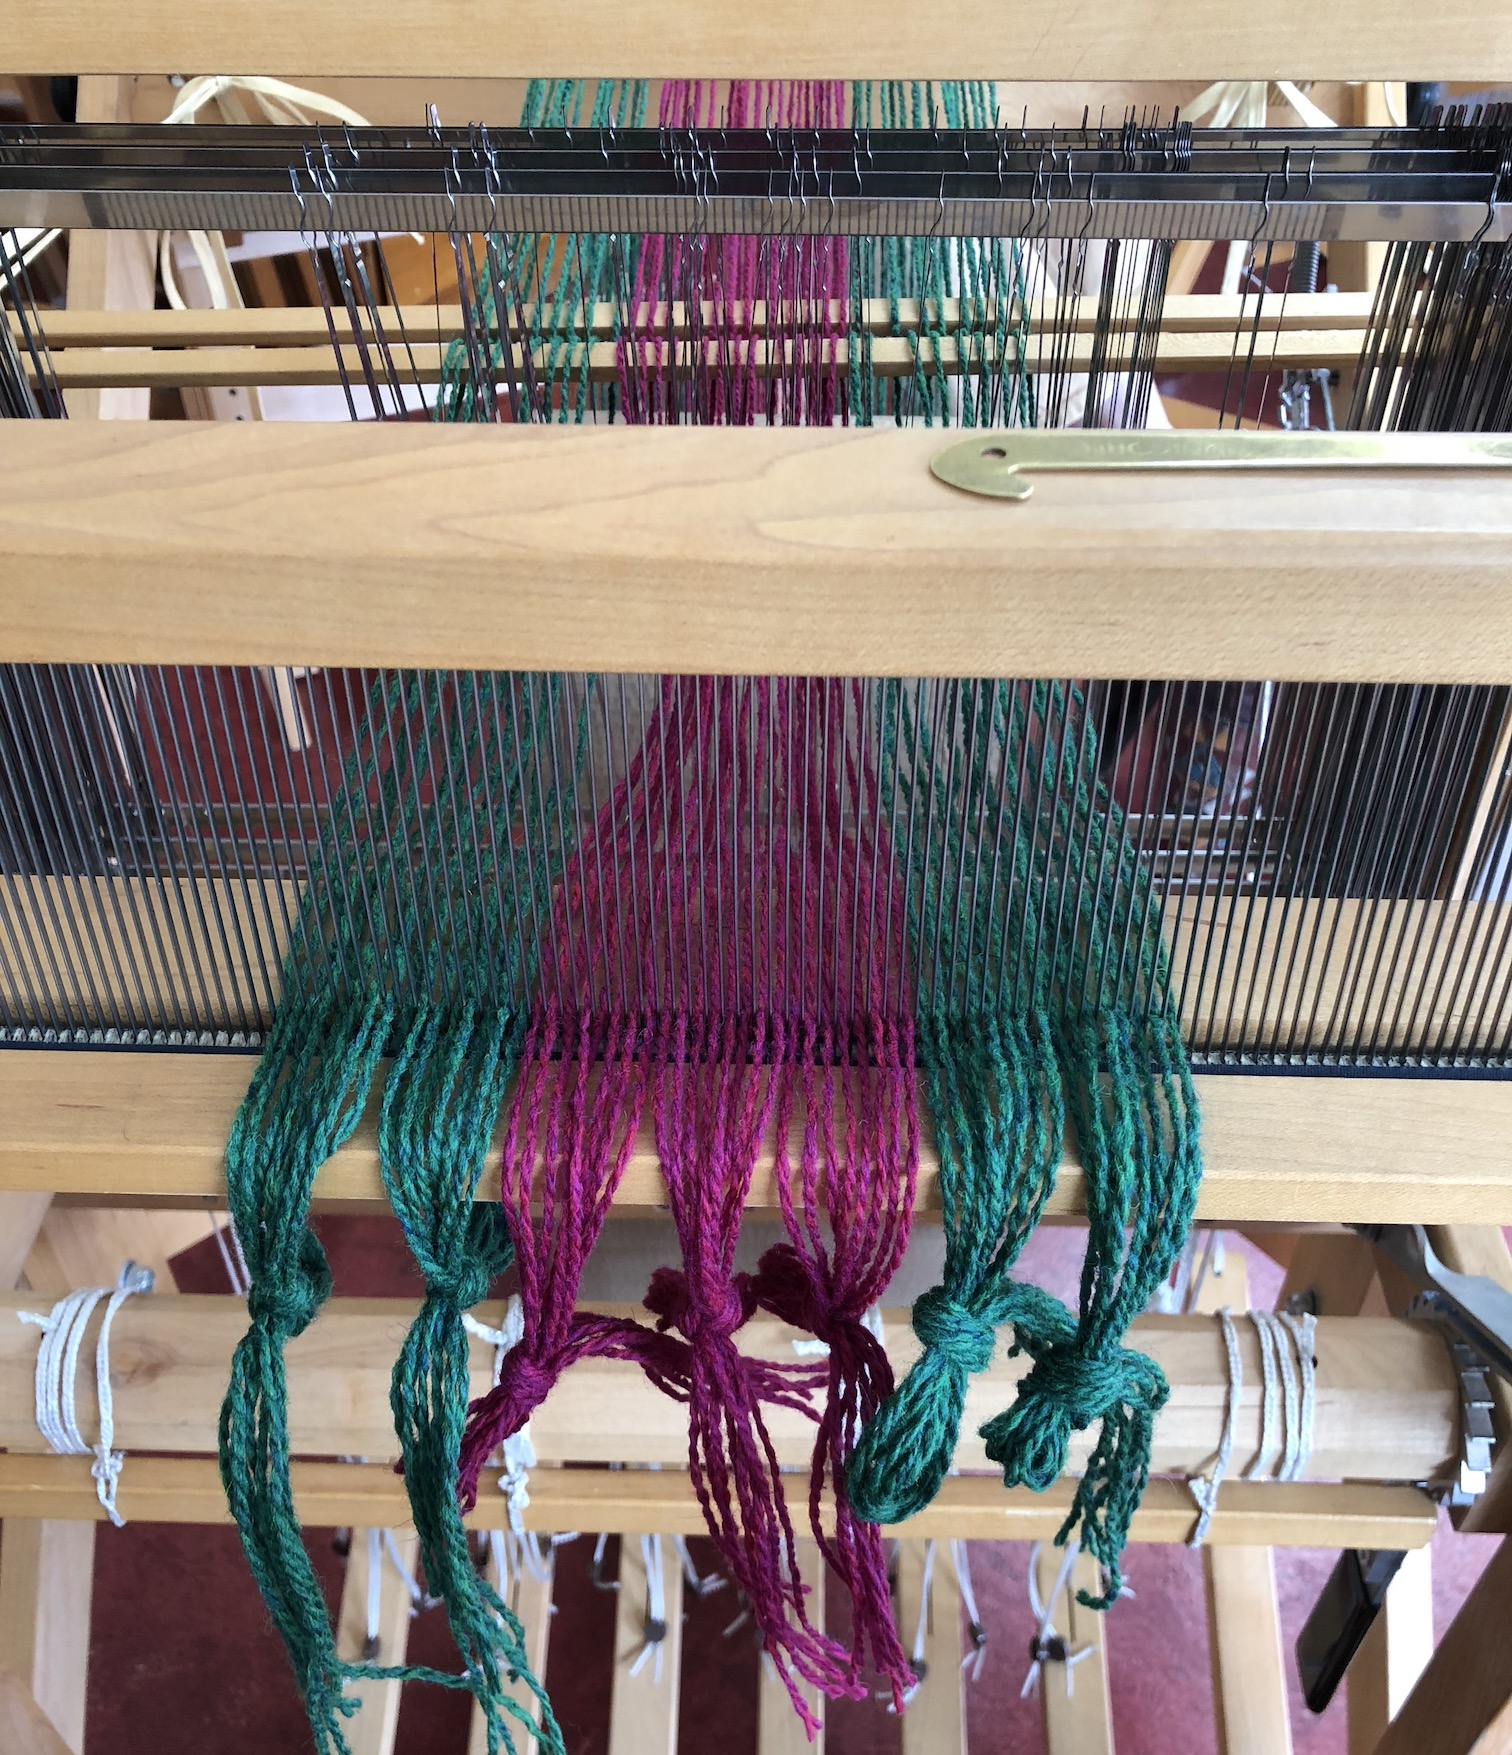 Warp threads going through the reed, before weaving had begun. On top of the reed rests the metal hook I used to pull them through